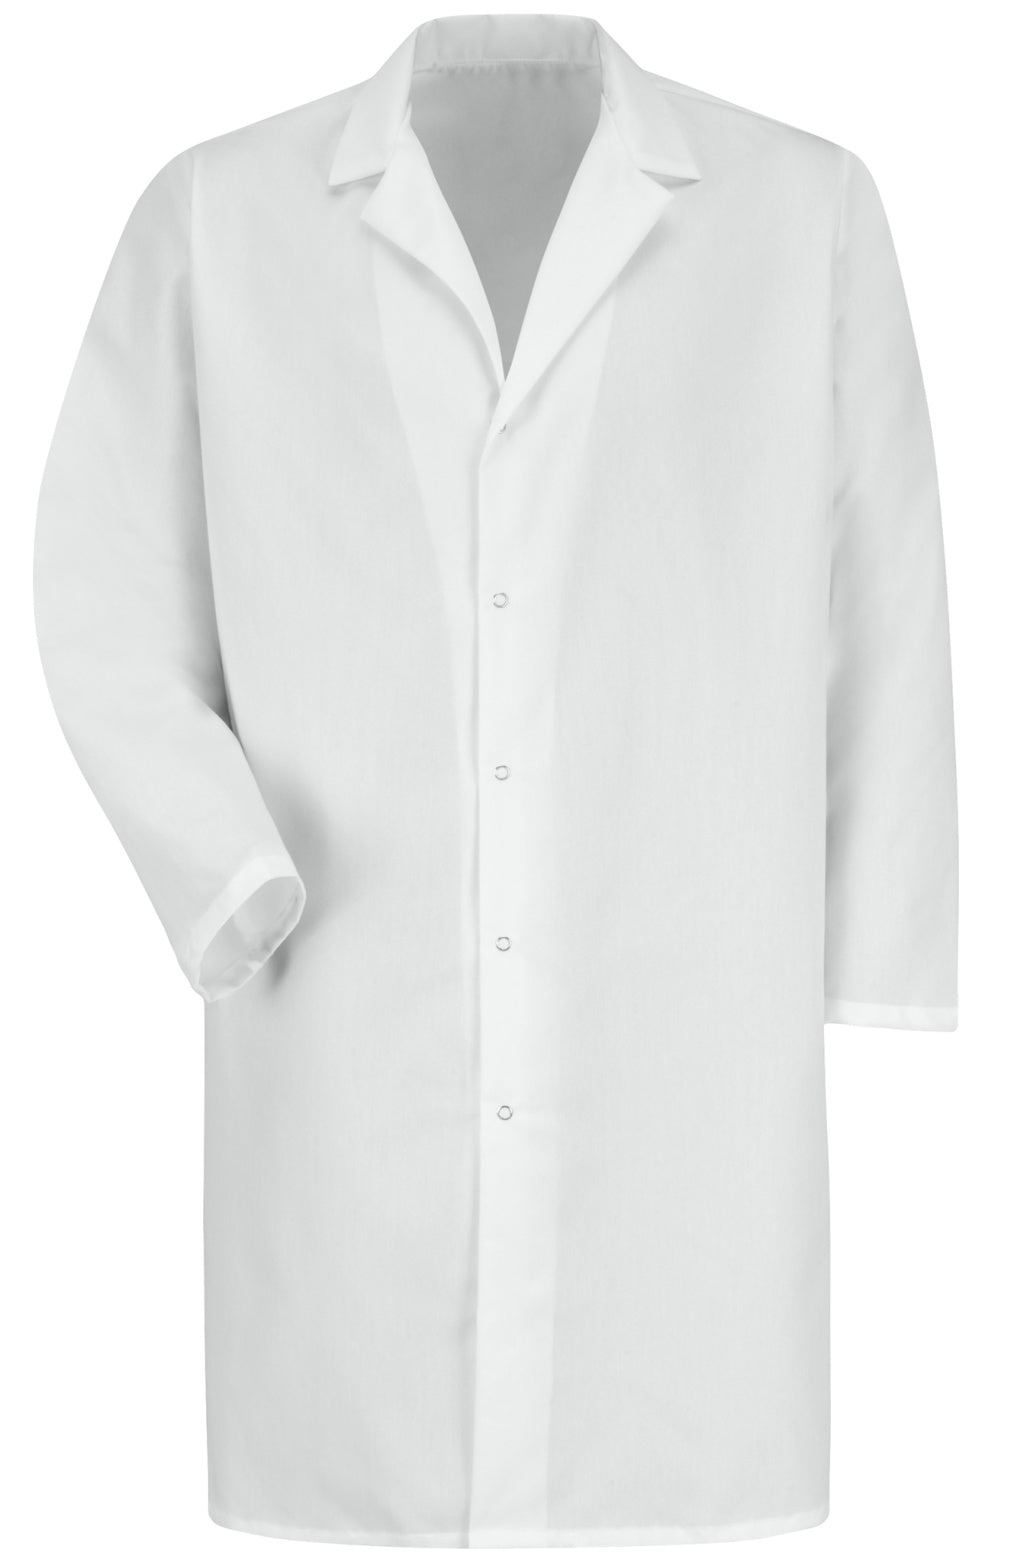 Red Kap KP38 Special Snap Front Lab Coat